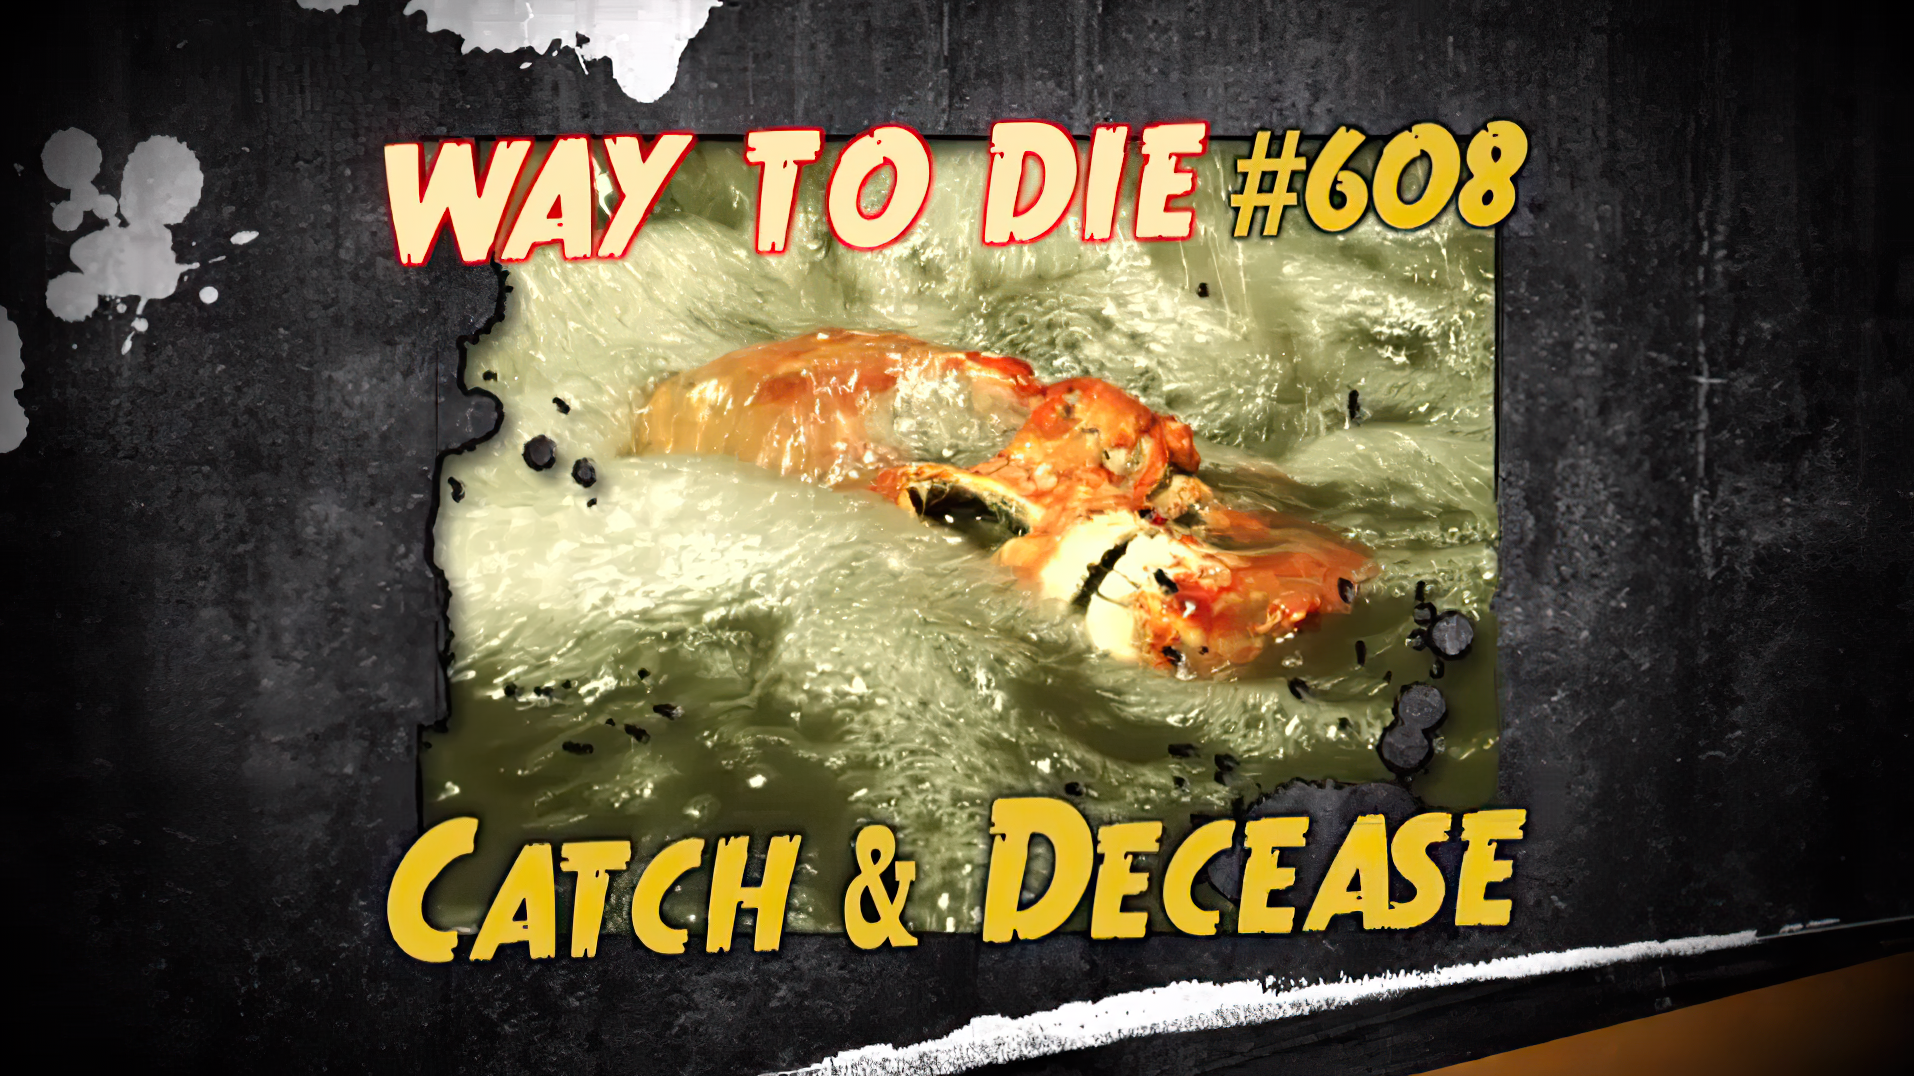 Catch and Decease